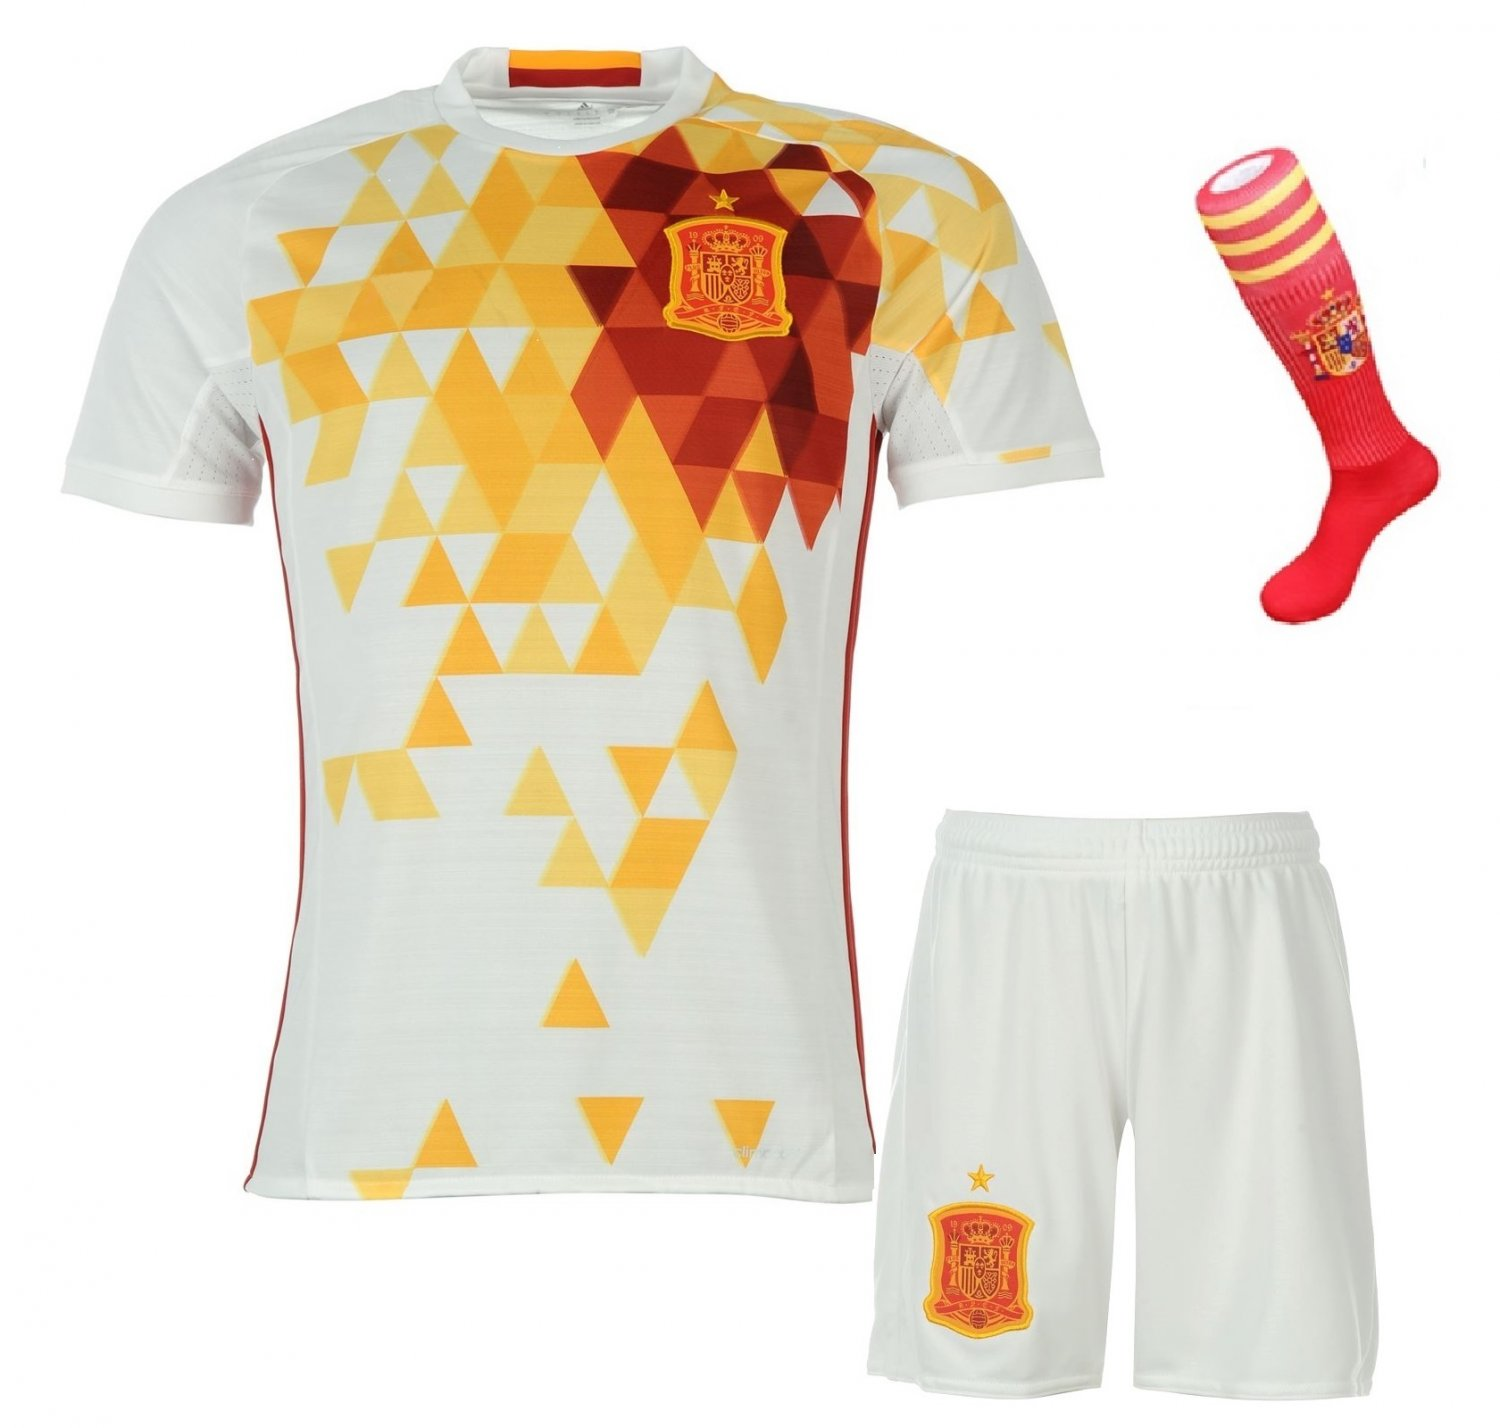 Spain World Cup Away football soccer jersey w shorts & socks kid youth for age 8-10